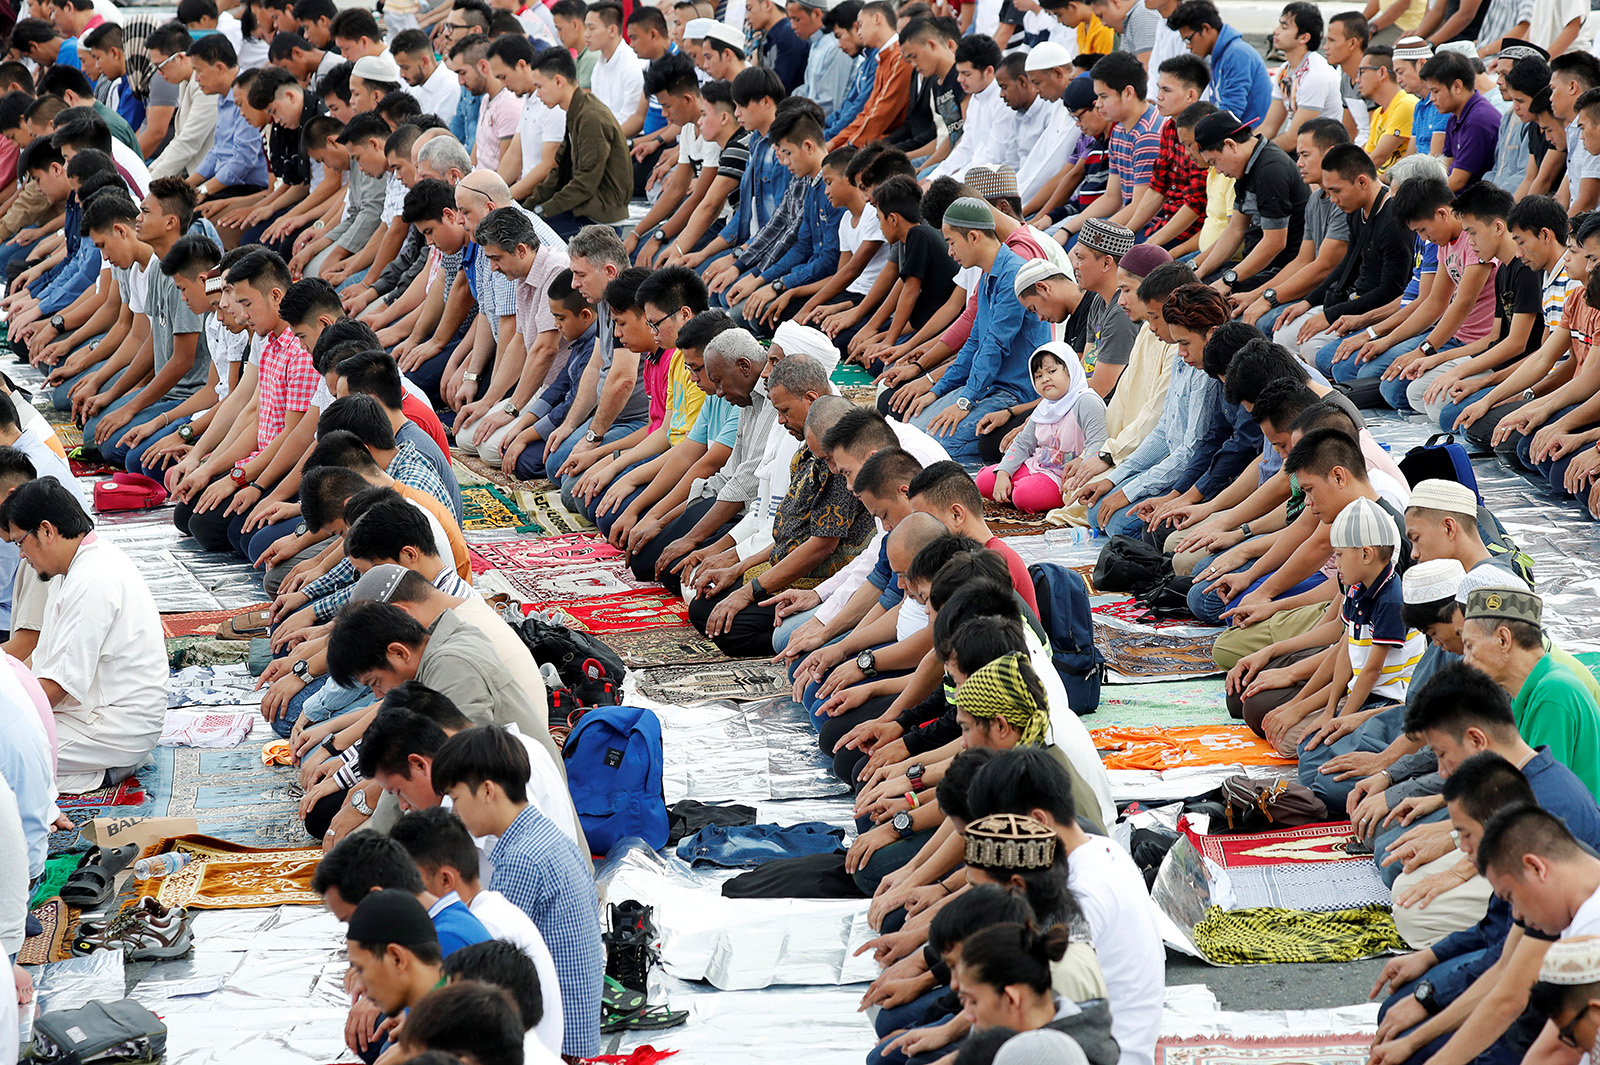 Filipino Muslims pray during the first day celebration of Eid al Fitr at Luneta Park in Manila